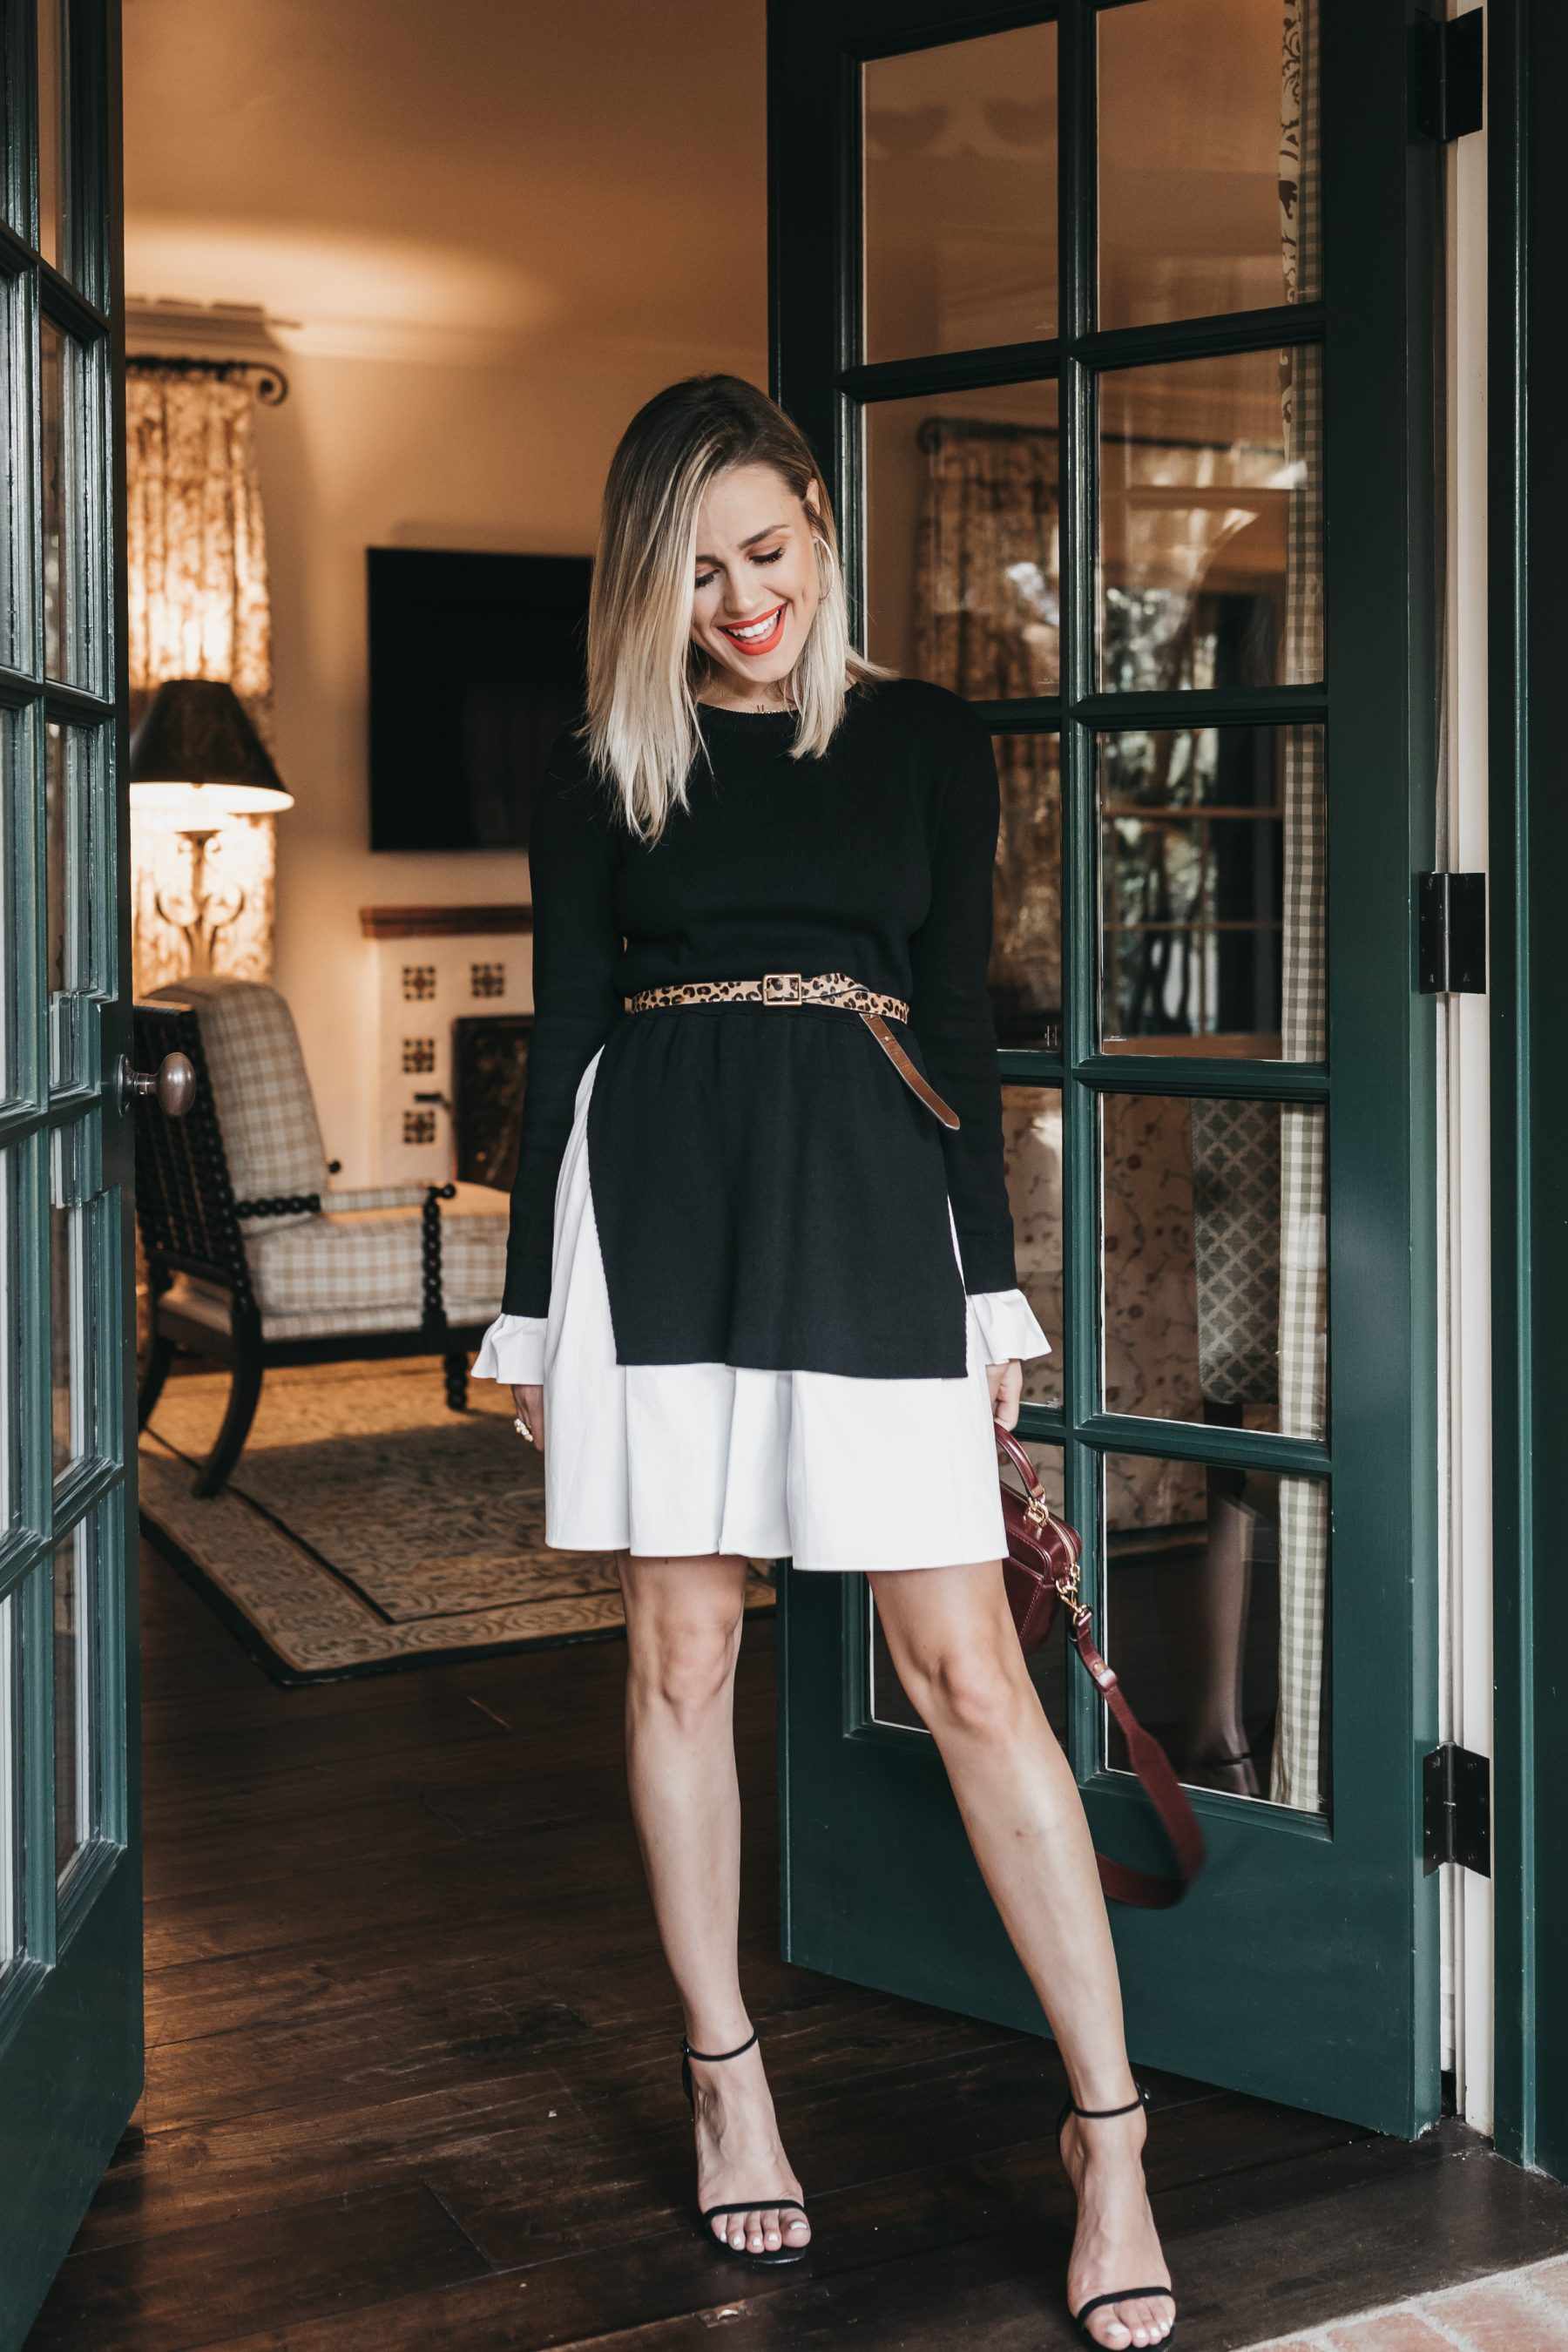 Houston fashion blogger Uptown with Elly Brown wears a Knit Combo Dress paired with an oxford bag for the fall season.